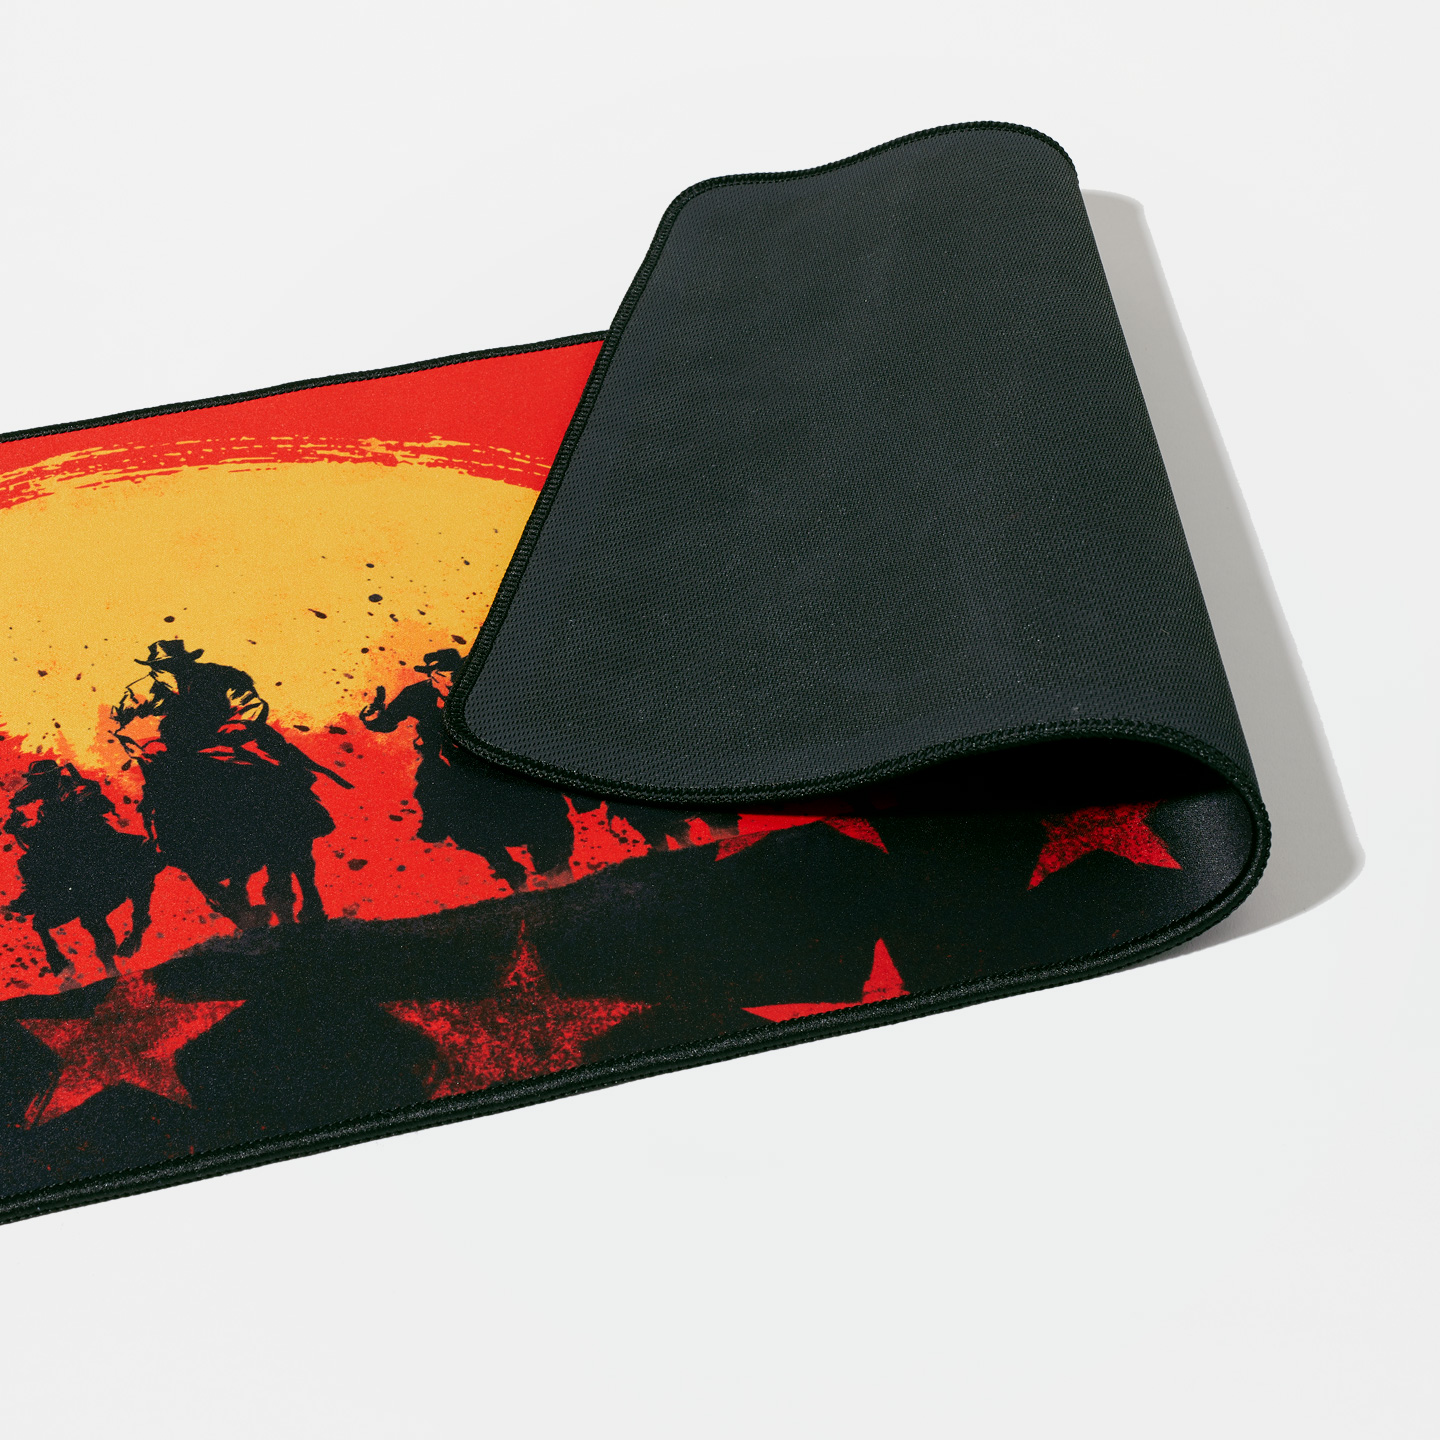 Outlaws Deskpad